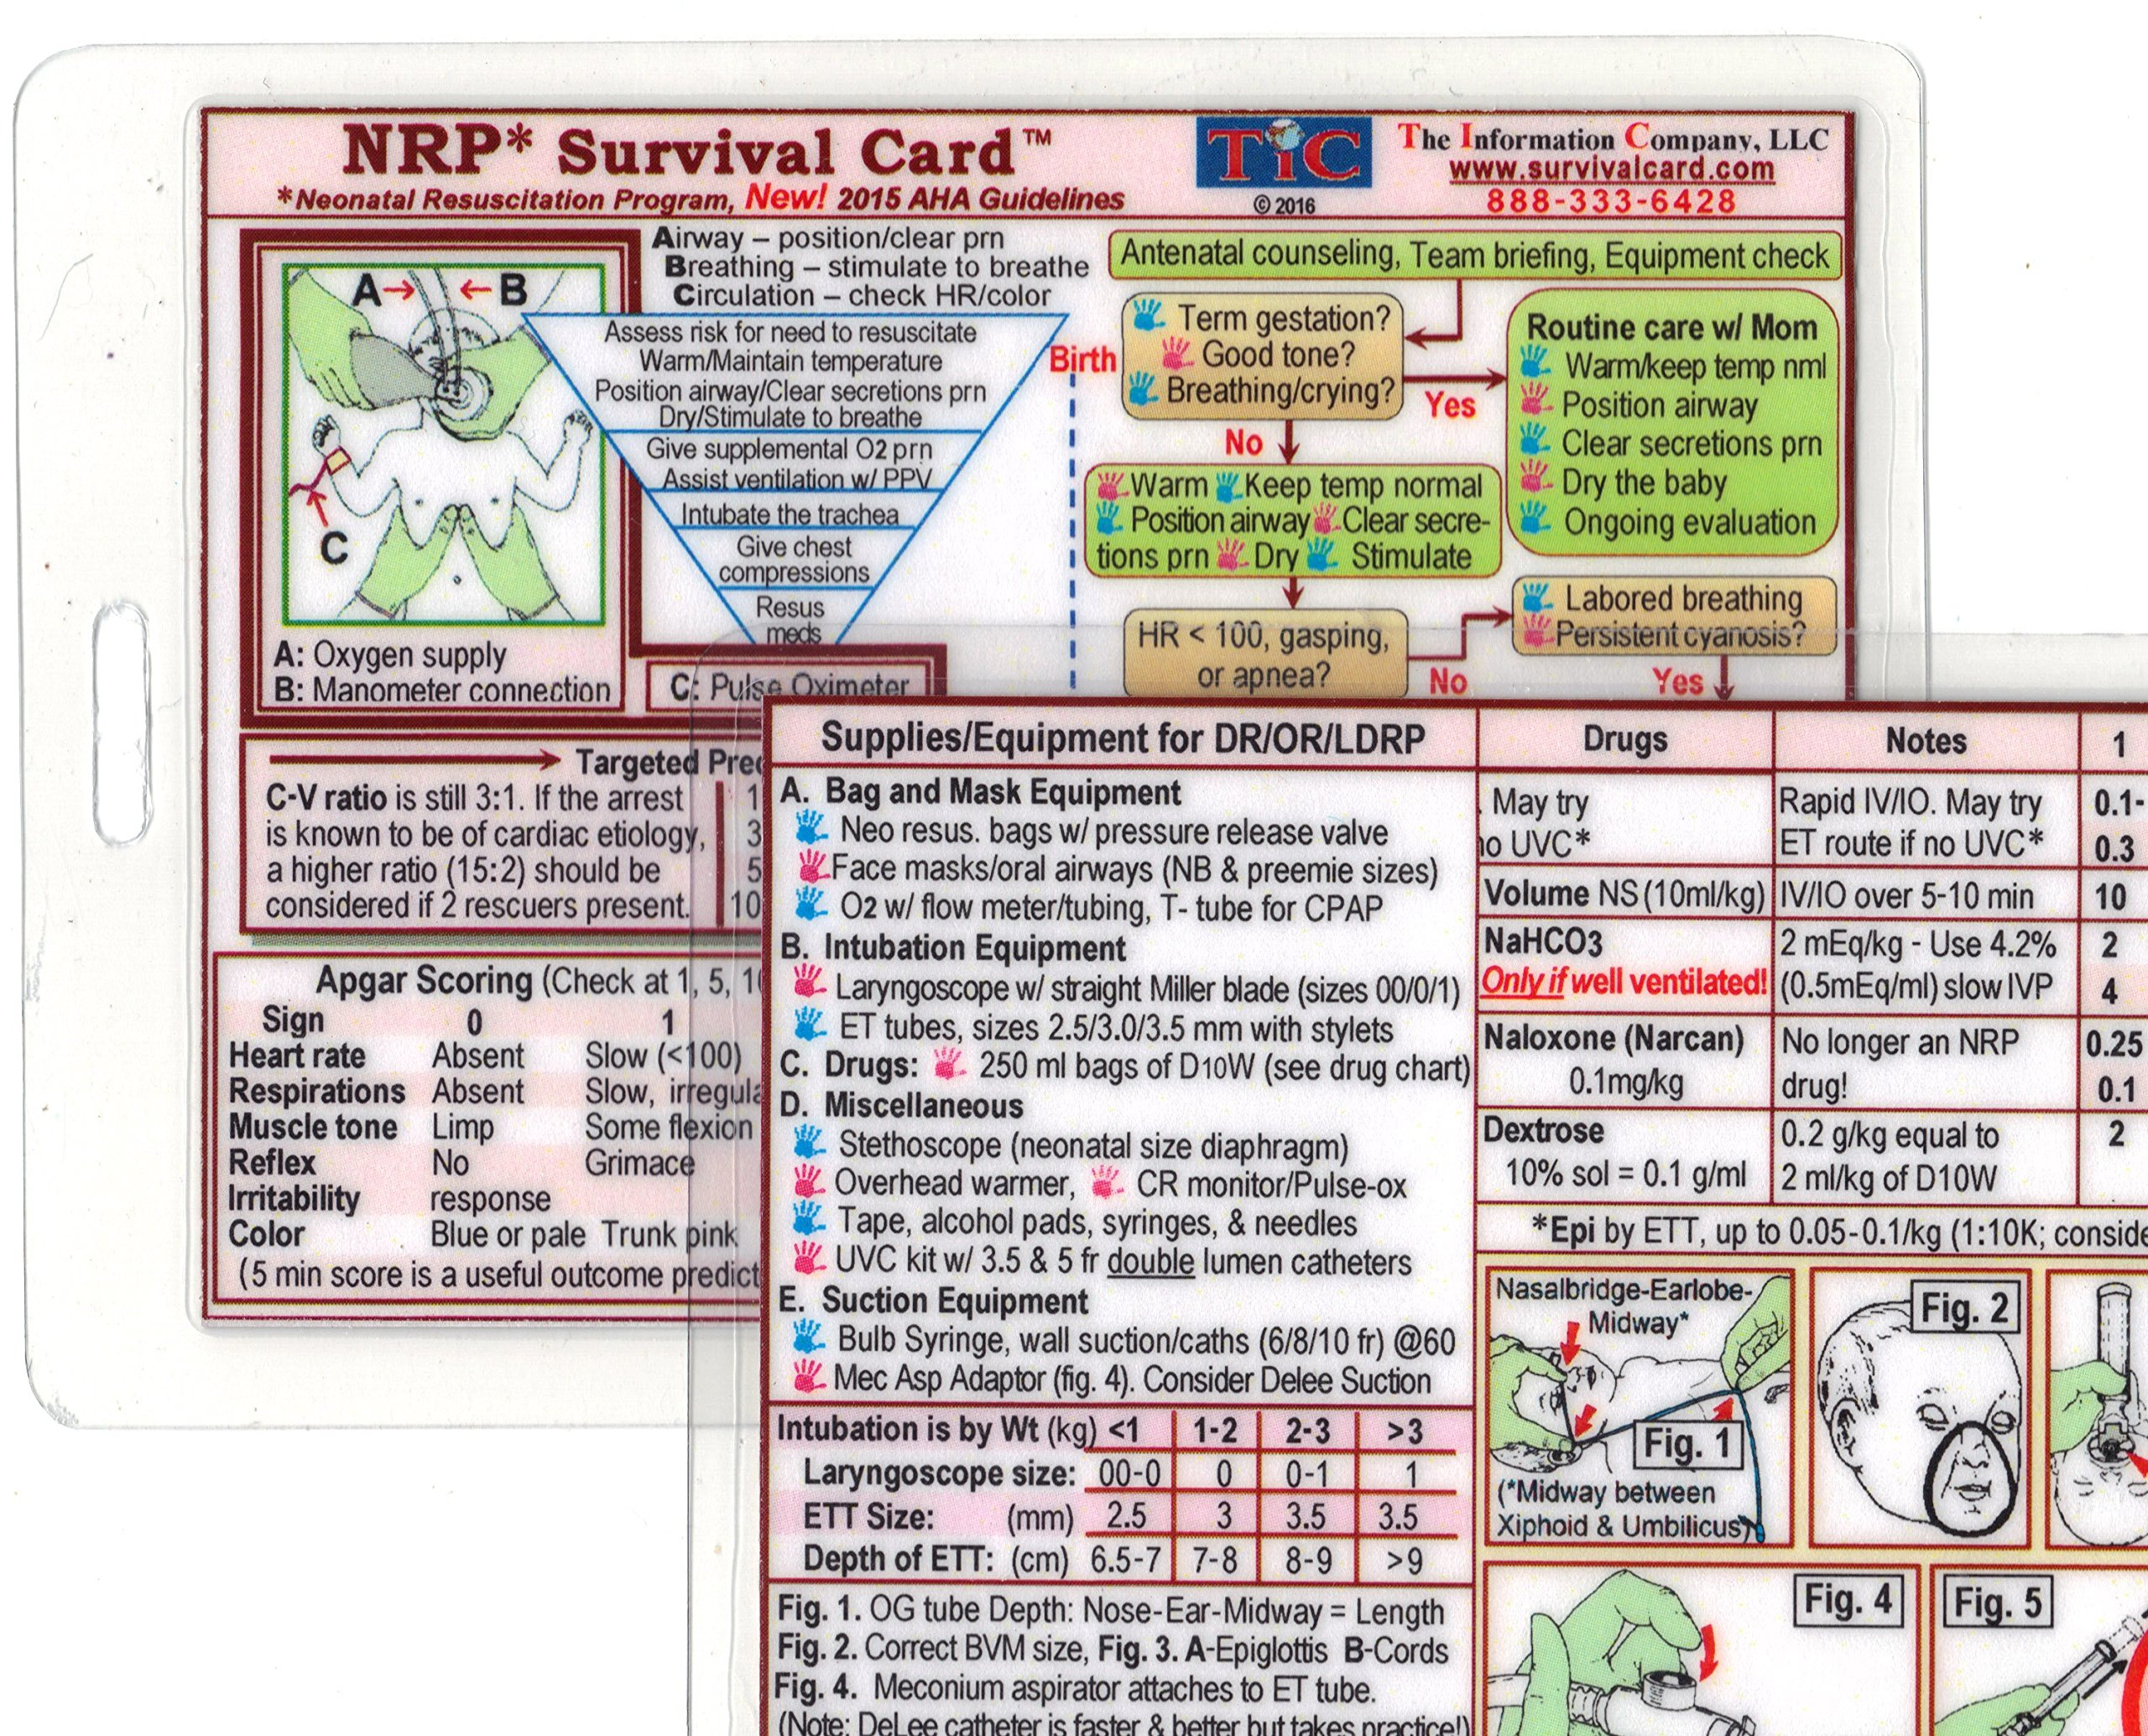 nrp neonatal resuscitation program survival card small 3x4 3 8 in rh amazon com Printable Survival Cards Business Card Survival Tool